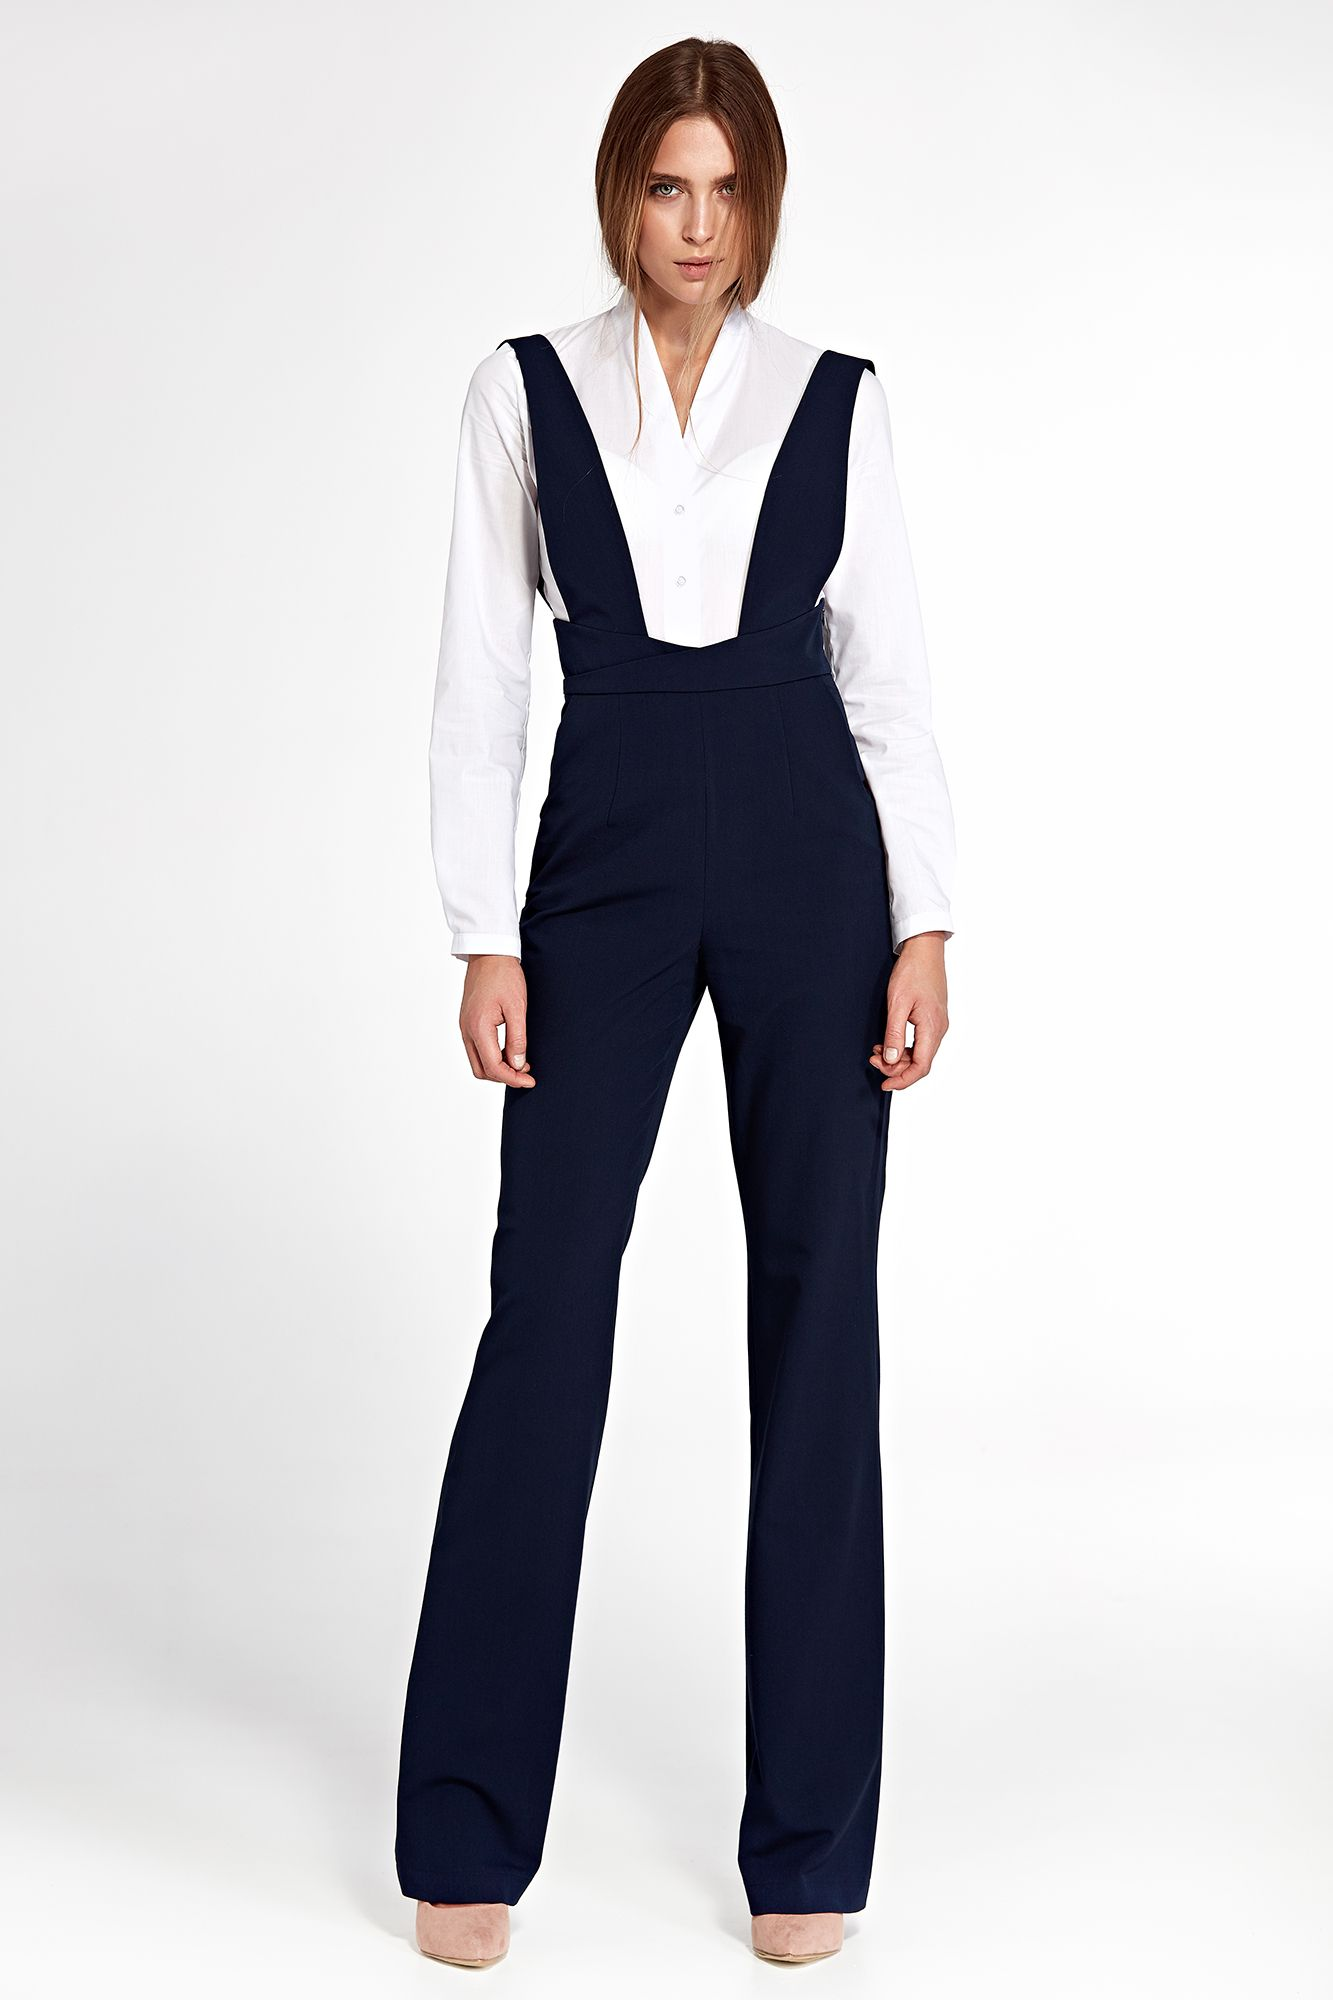 Jumpsuit with suspenders - navy blue